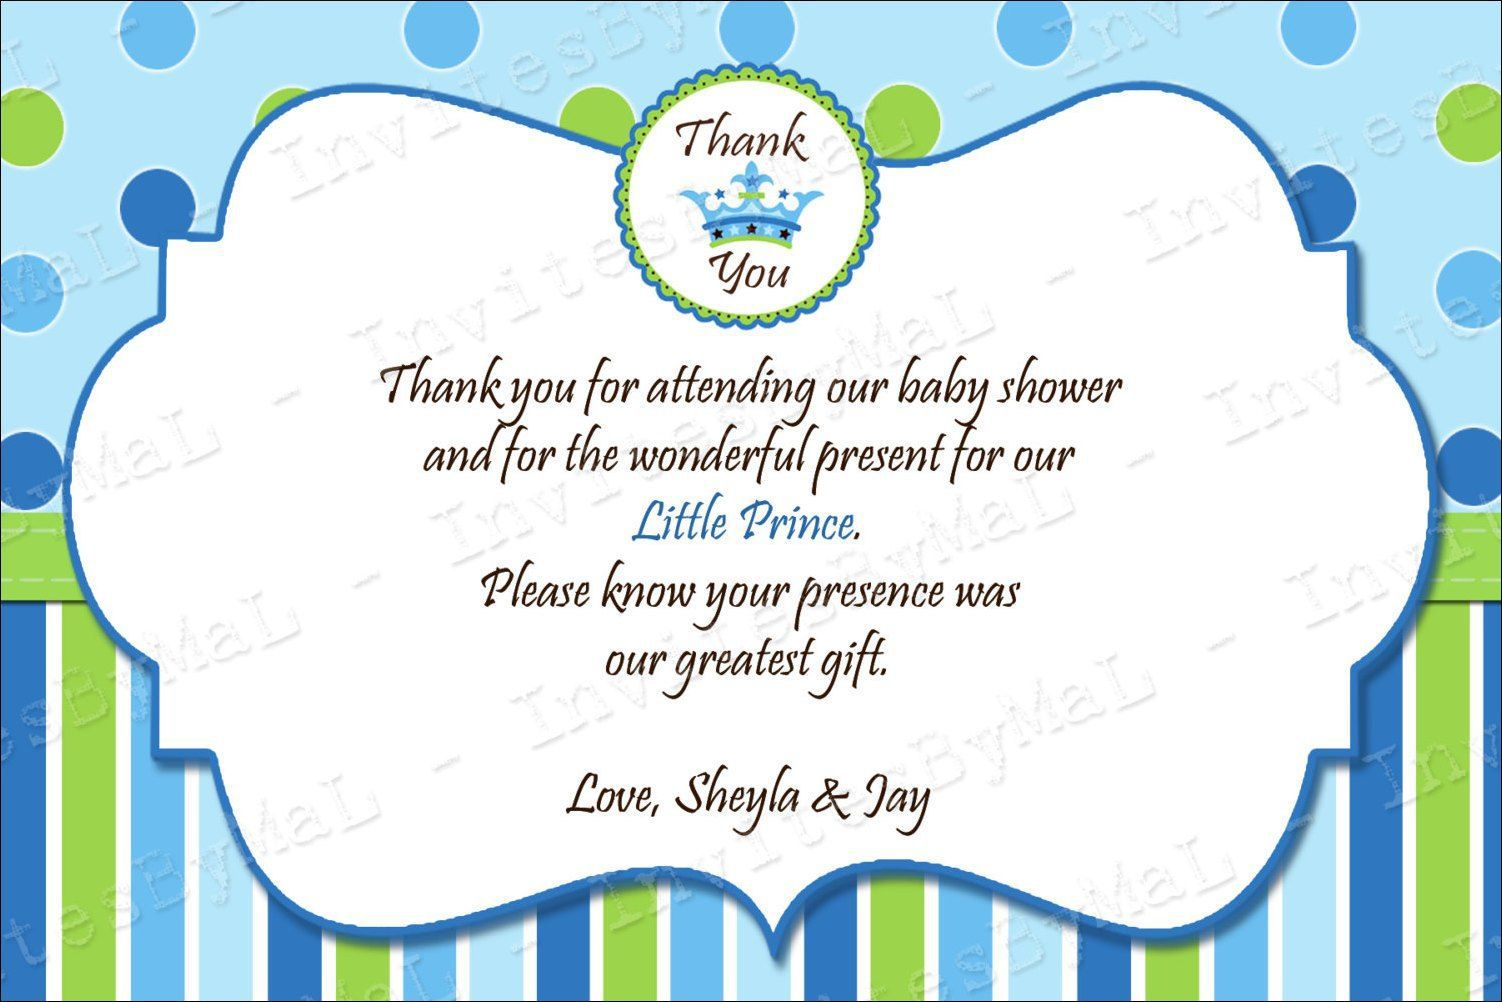 007 Dreaded Thank You Note Template For Baby Shower Gift High Def  Card Letter SampleFull